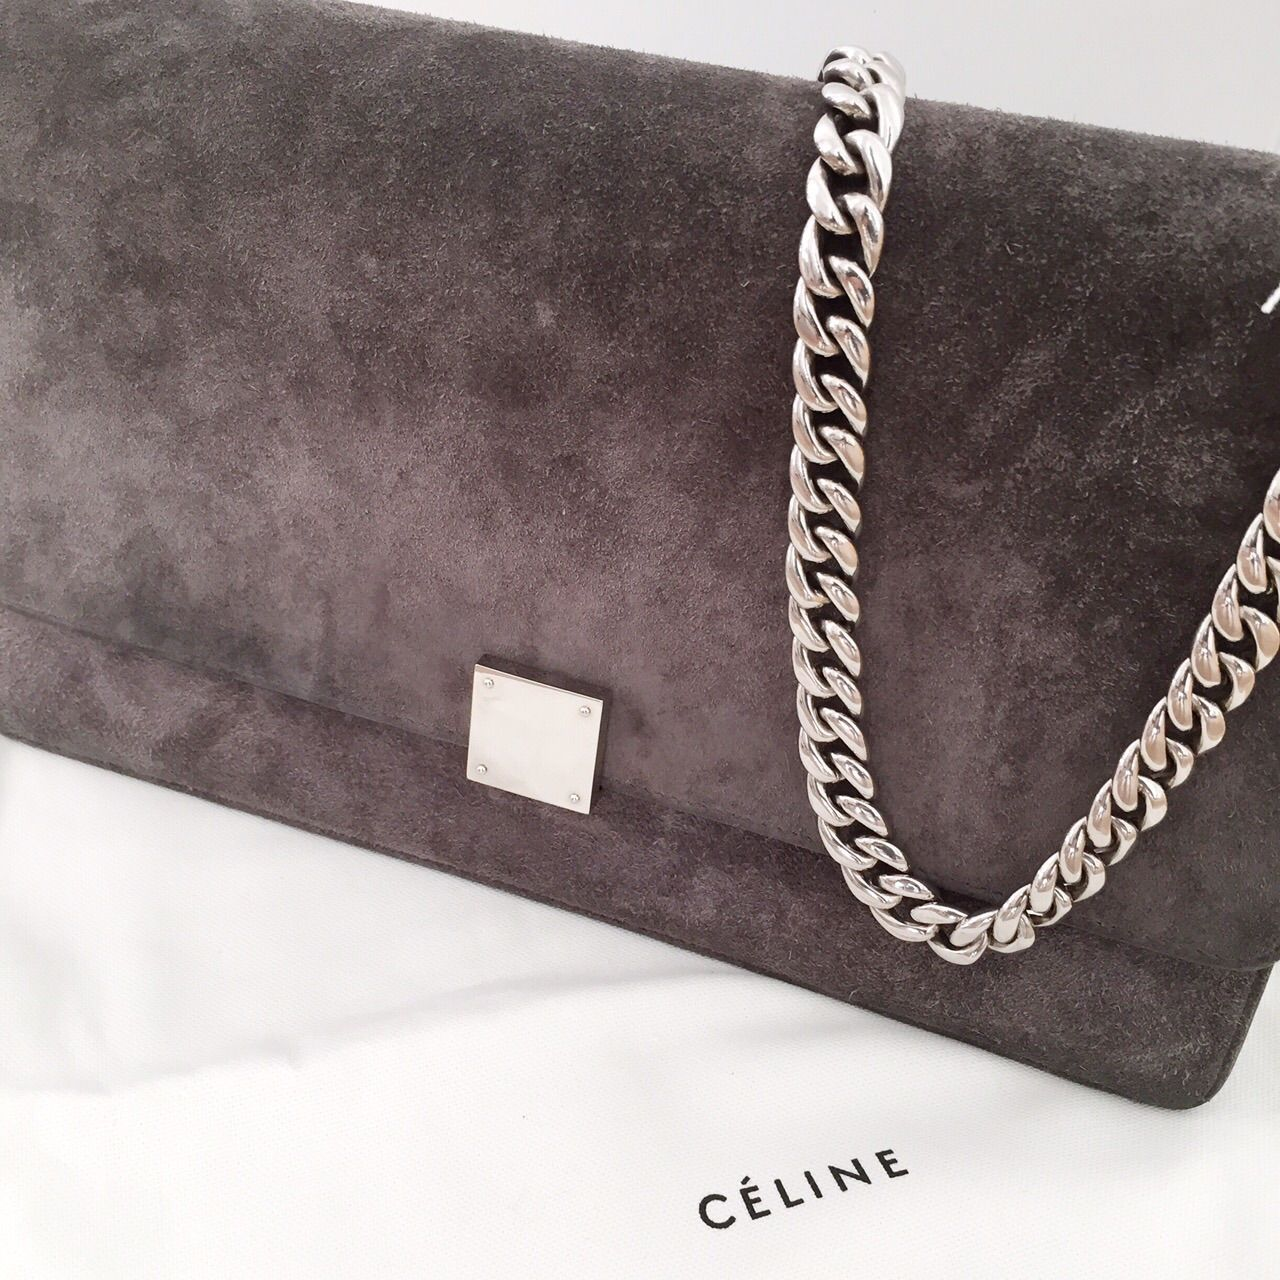 #celine #secondhand